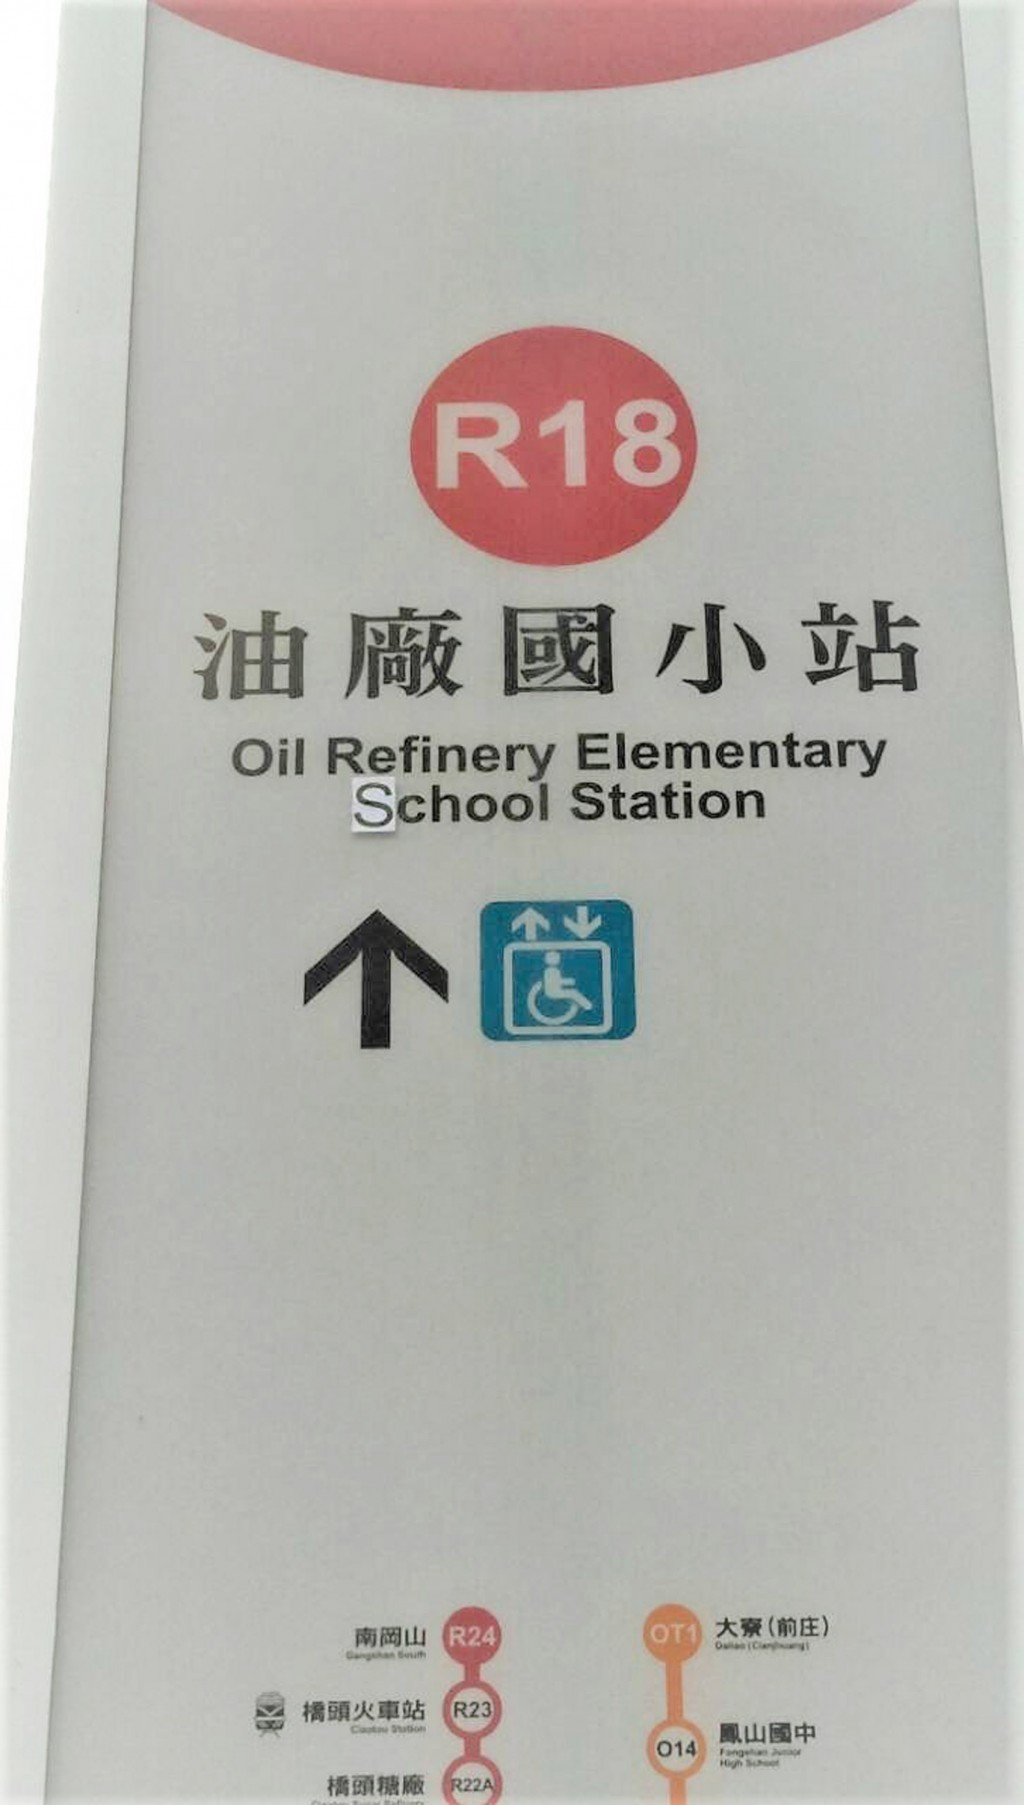 The temporarily corrected version of the Kaohsiung MRT sign (photo courtesy of the Kaohsiung MRT company).